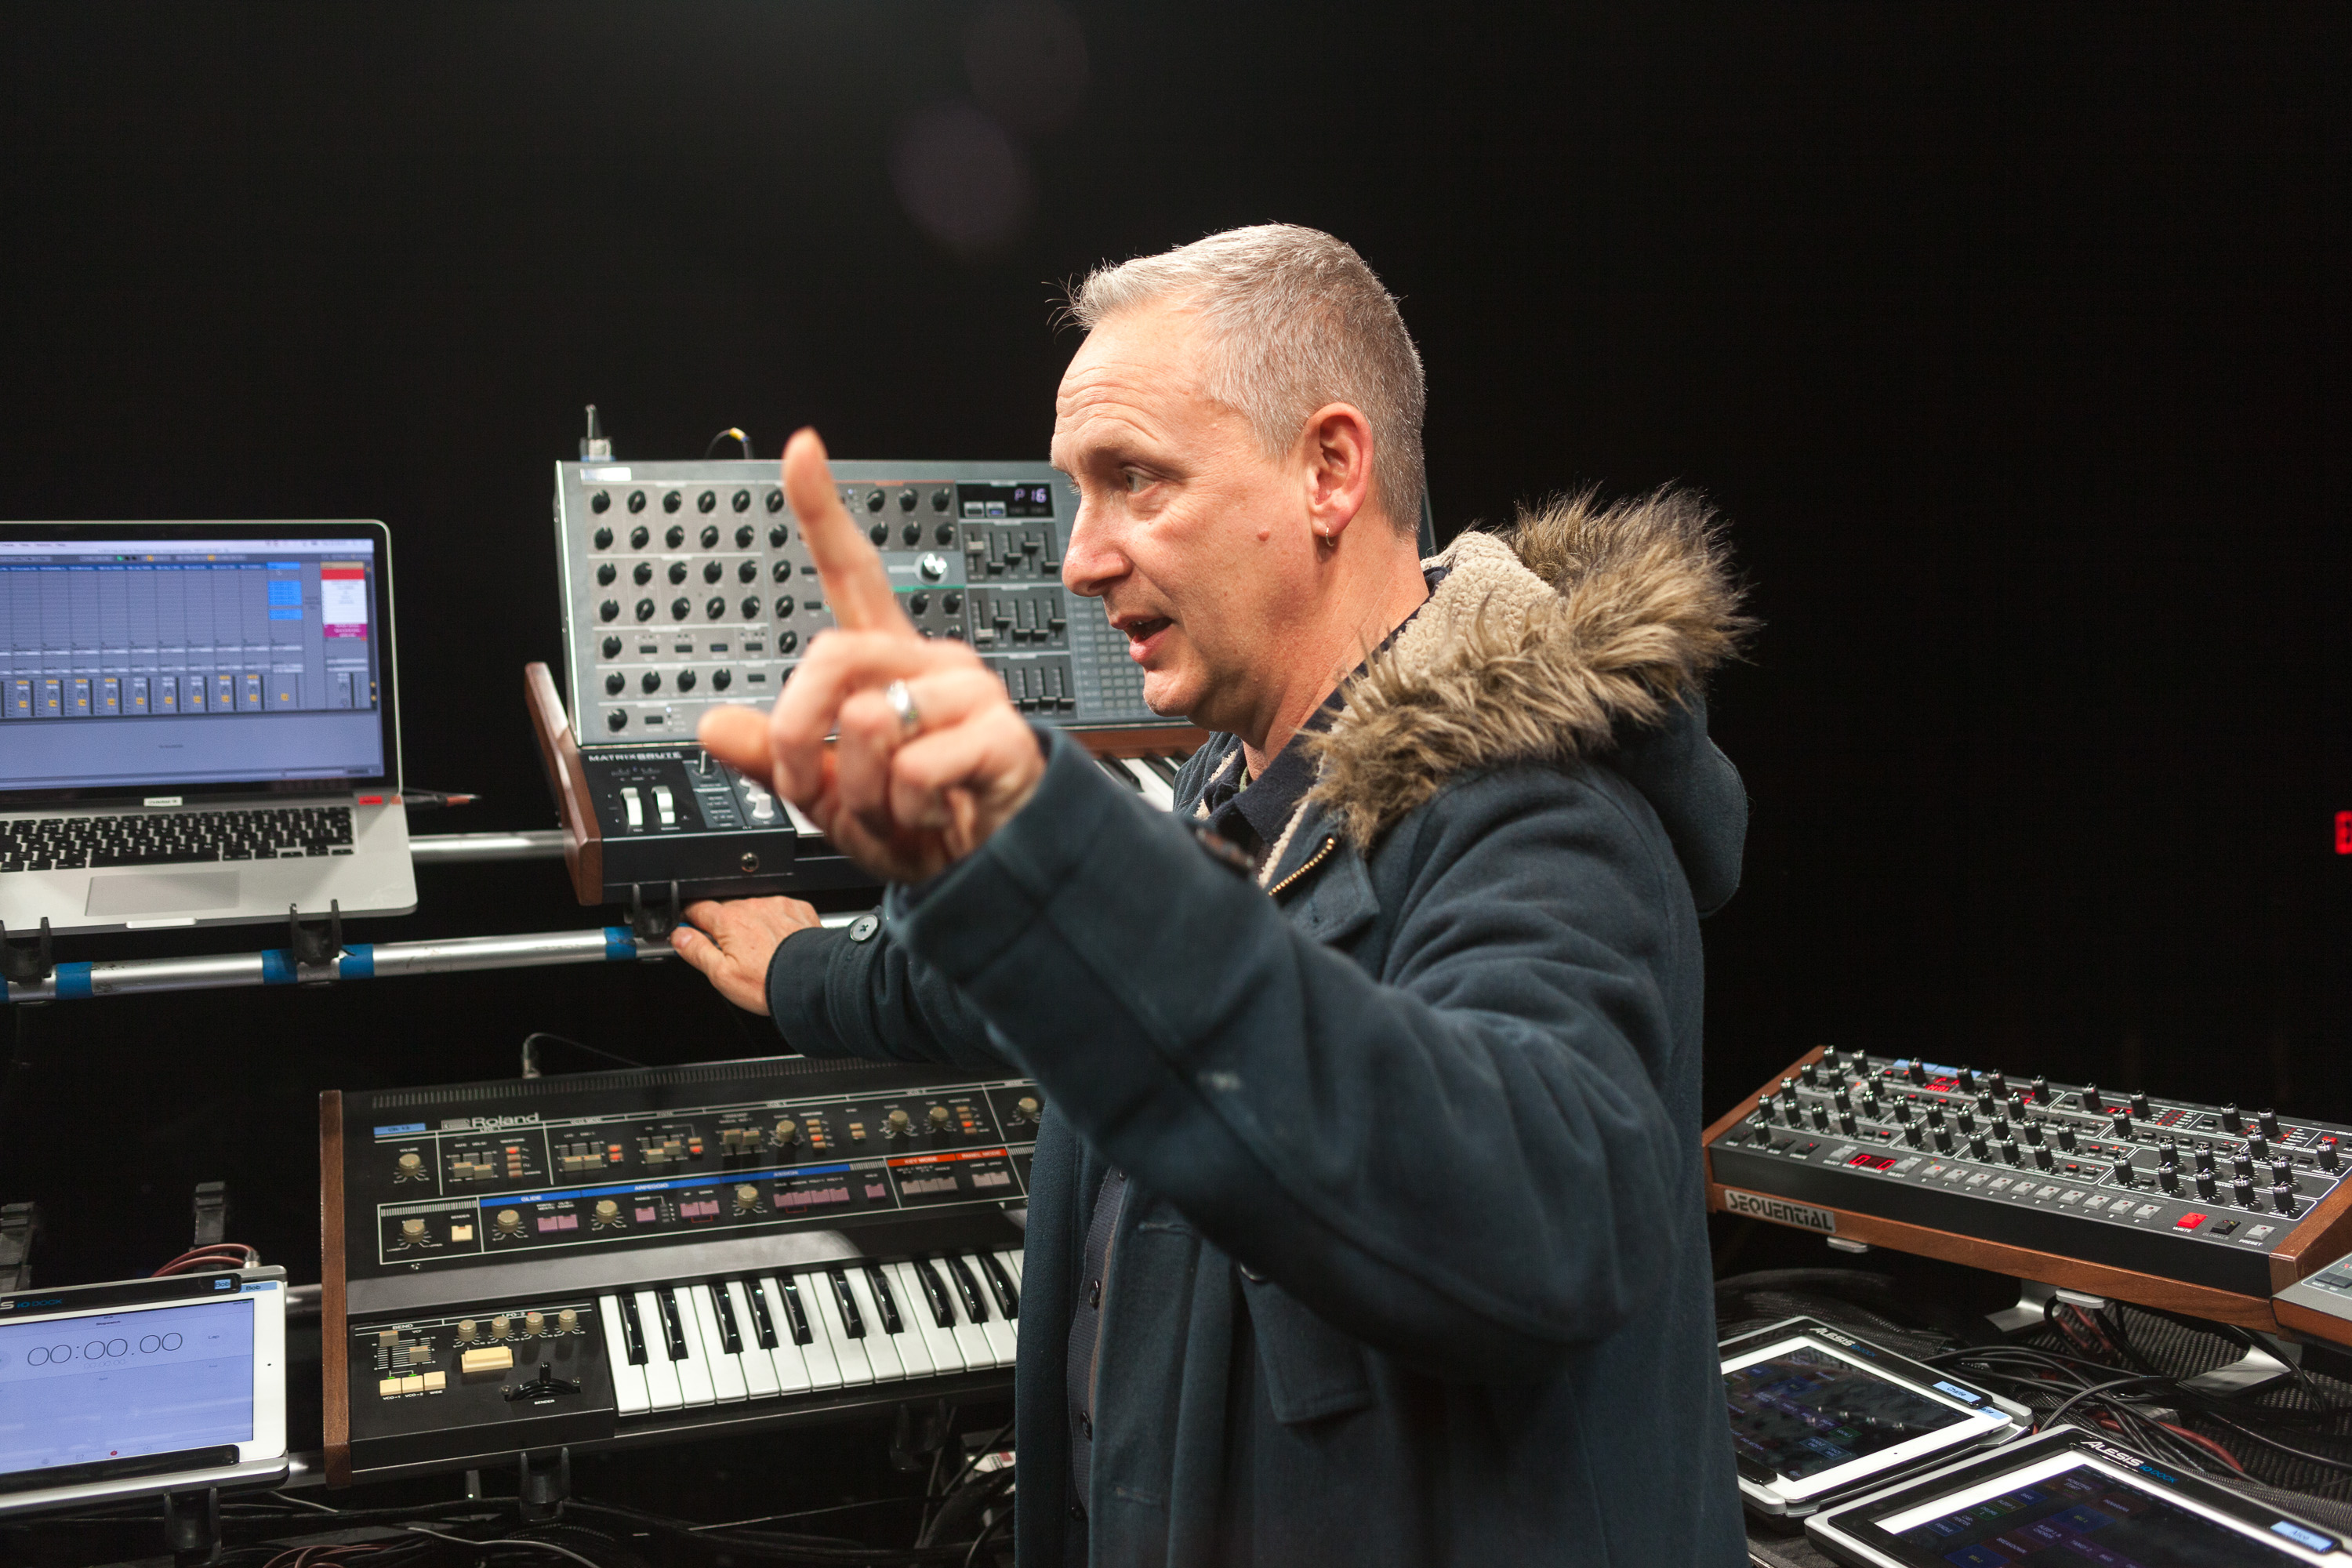 Like a studio onstage: Orbital tells us their live rig synth